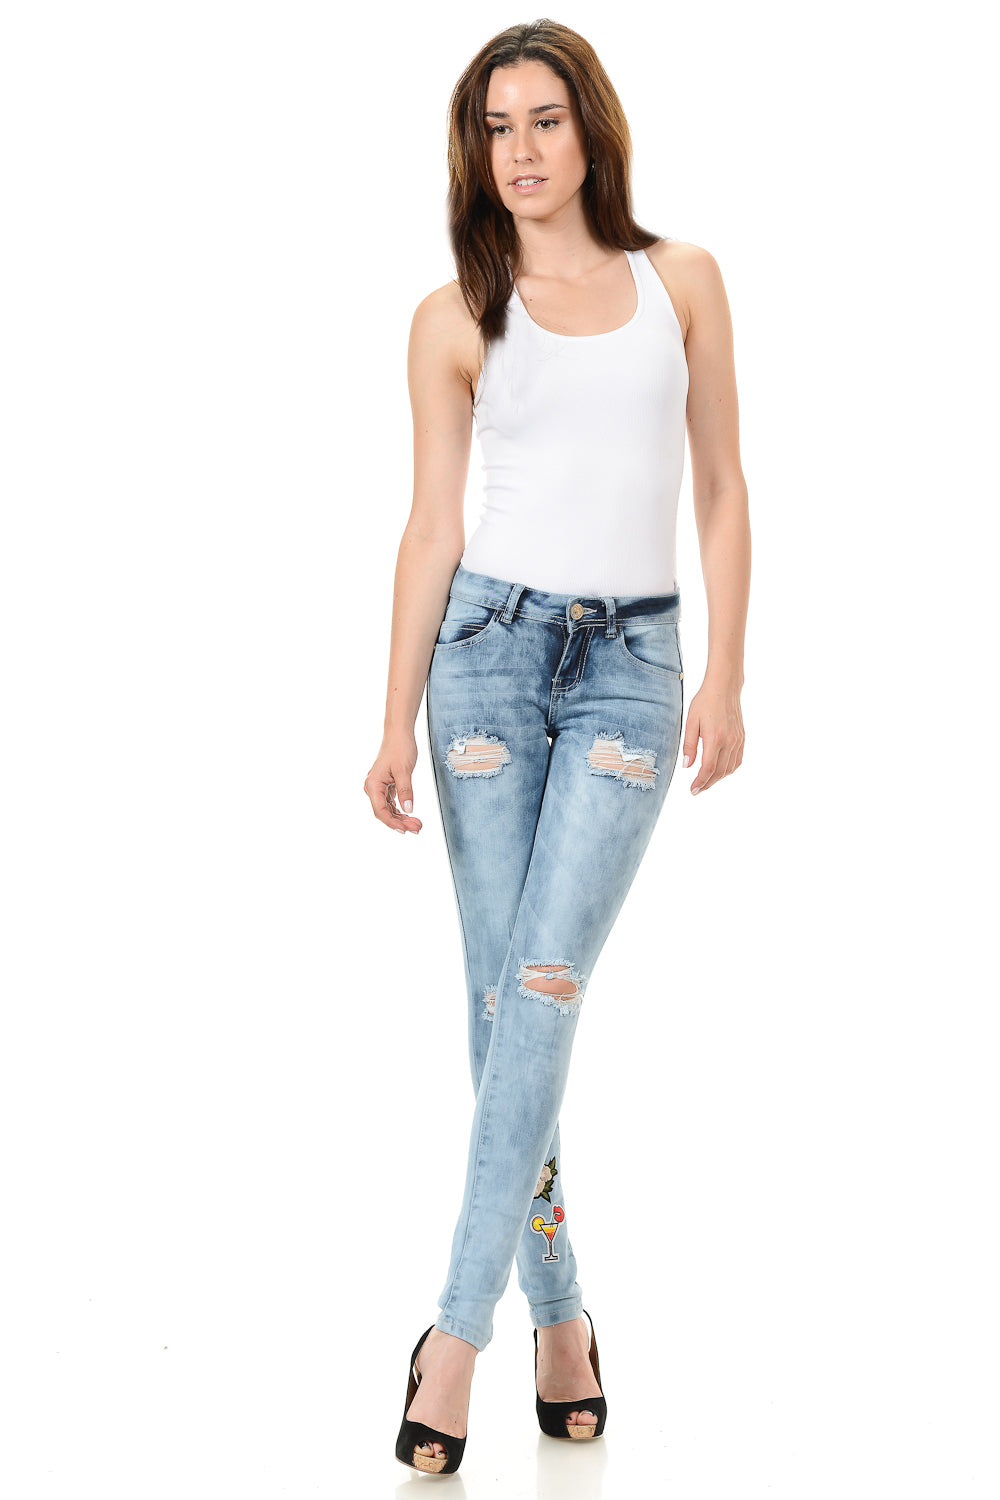 Sweet Look Premium Edition Women's Jeans - Push Up - Style X56-R